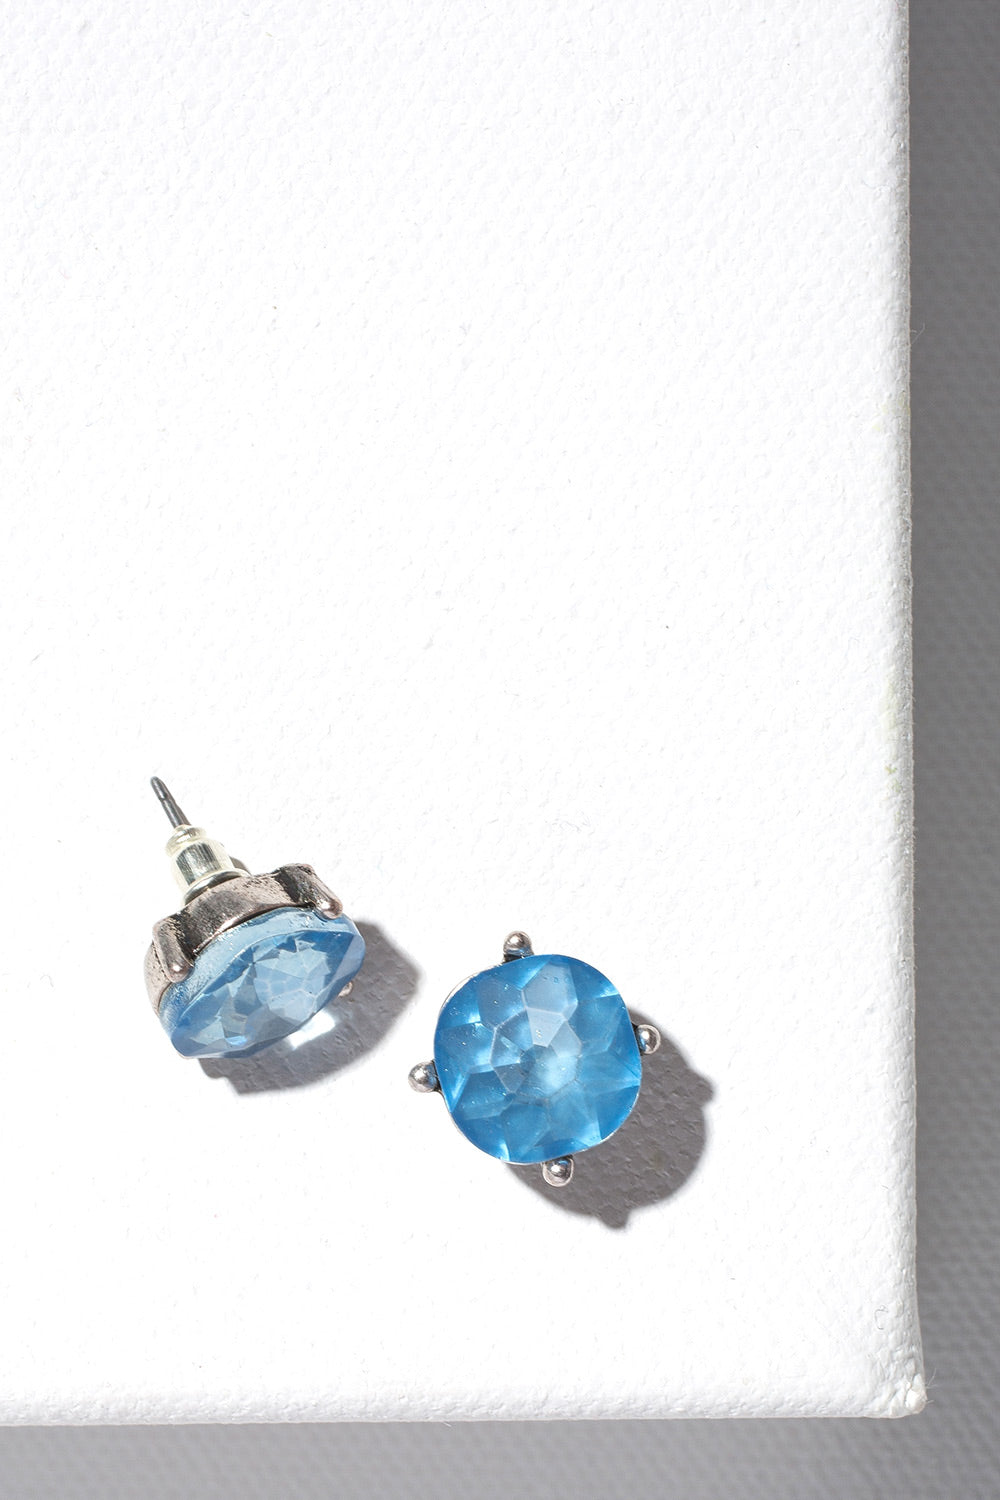 Type 4 Glacier Earrings